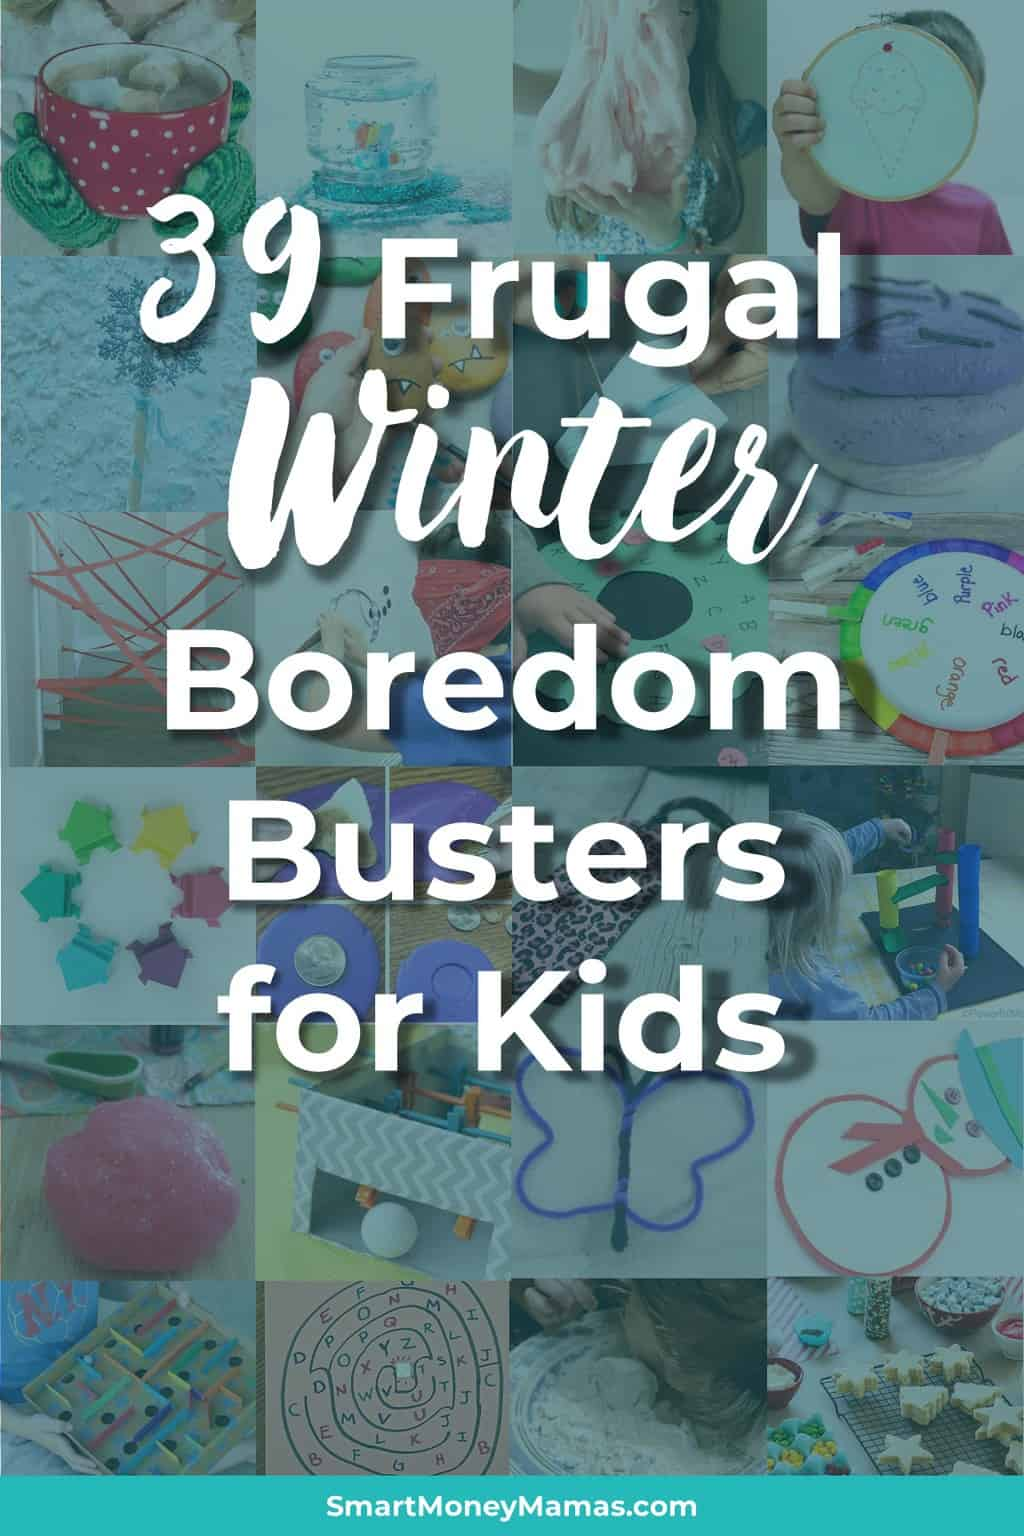 This list is so awesome! Pinning it for snow days and long weekends when we can\'t get the kids outside and they are going nuts. #kidsdiy #kidsgames #activitiesforkids #momlife